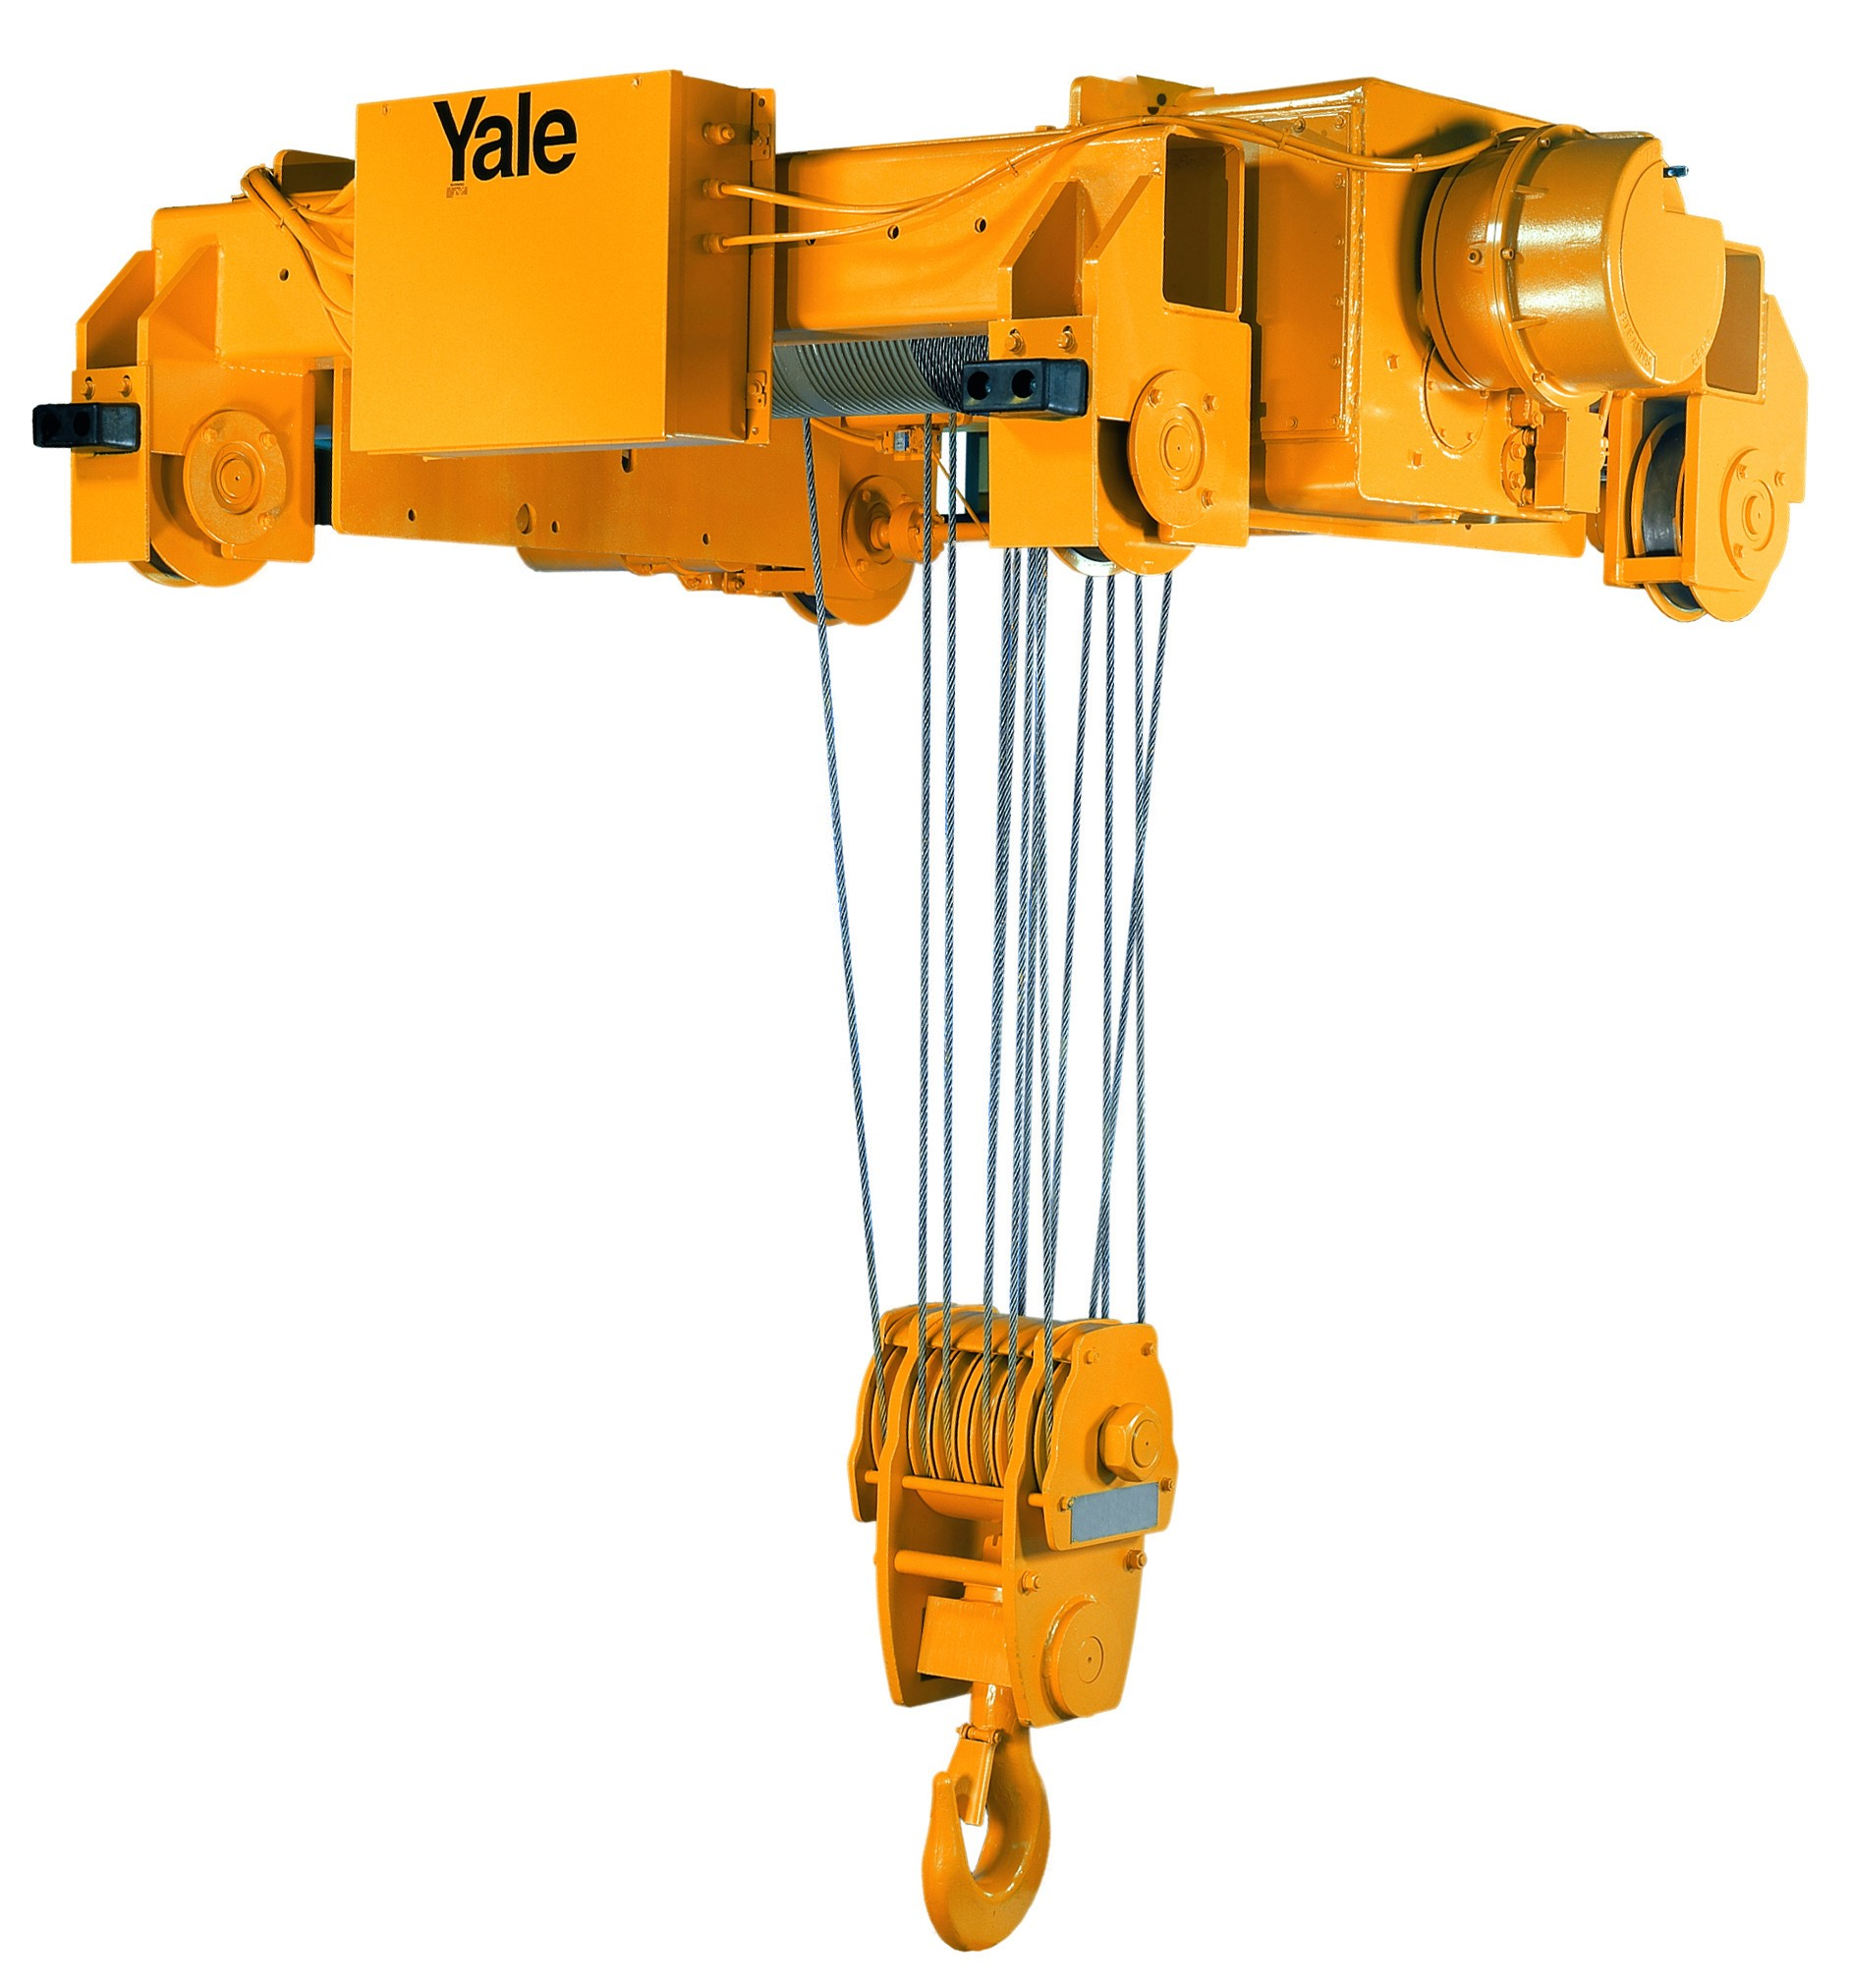 YALE - Cable King 20 Ton Electric Wire Rope Hoist (15fpm & 92' Lift Double Reeve)